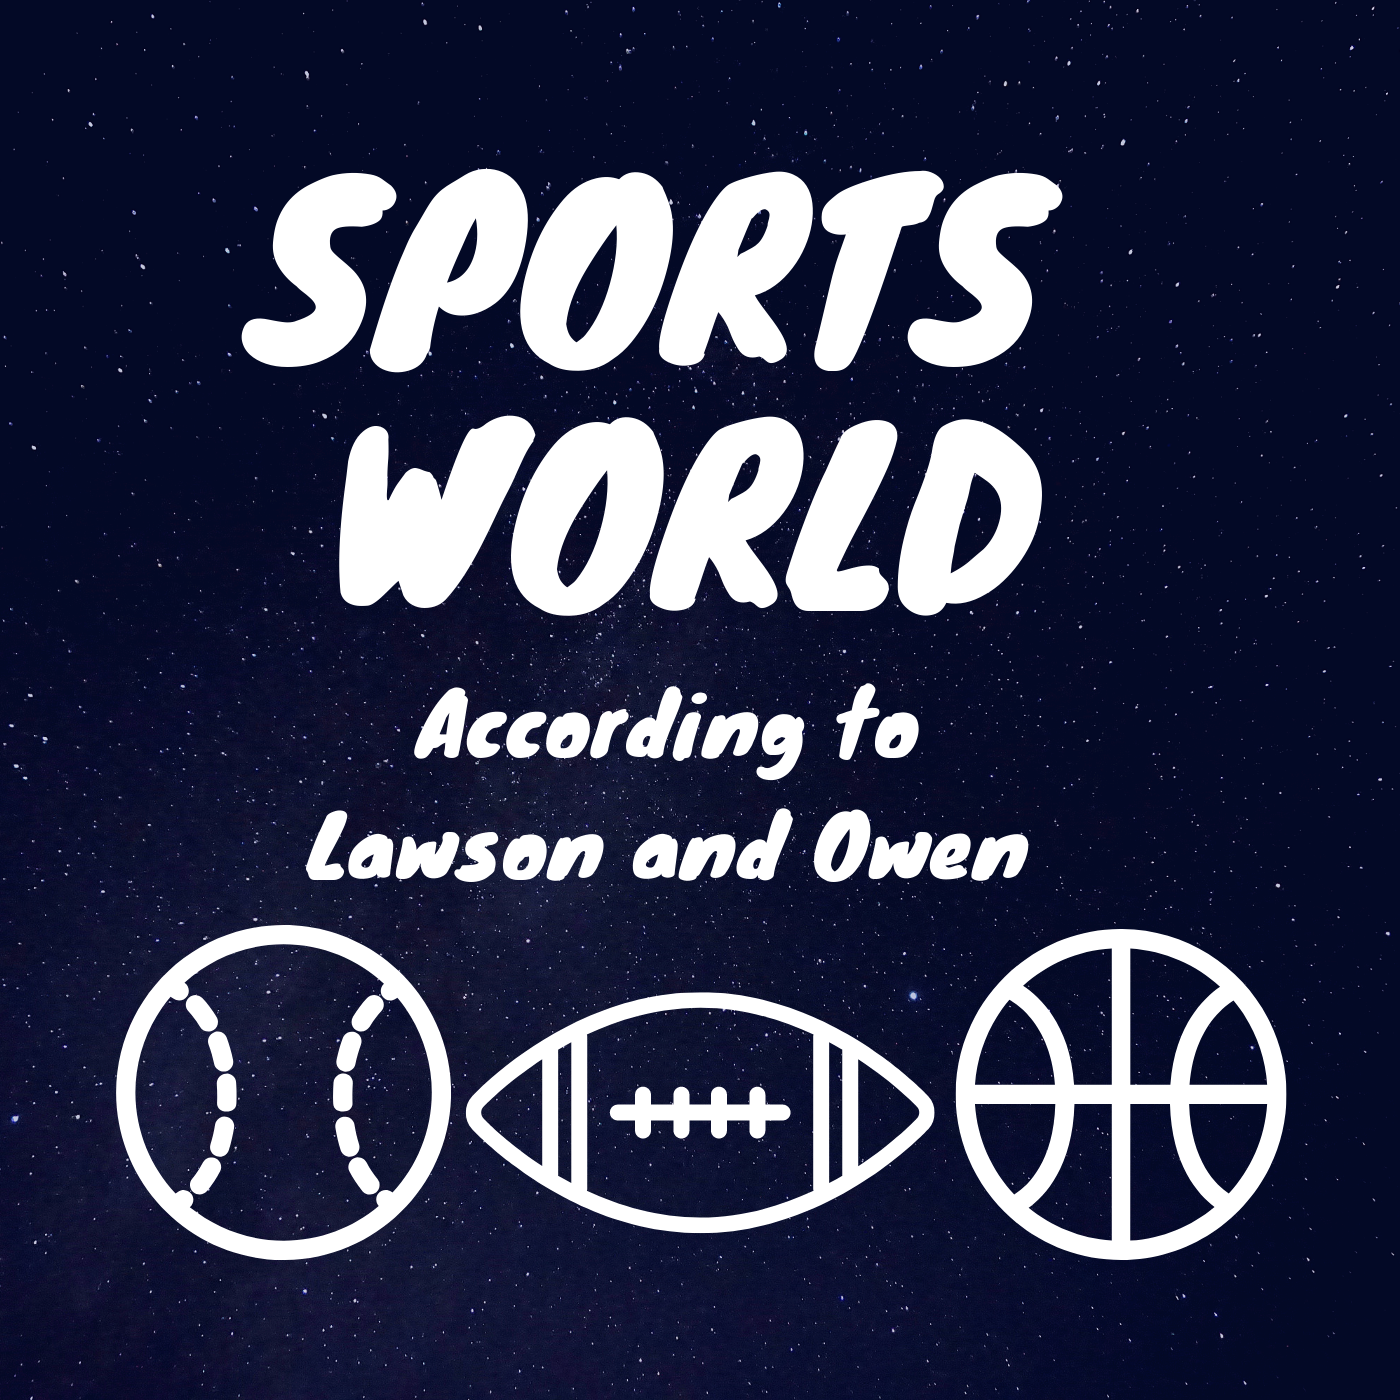 Sports World According to Lawson and Owen